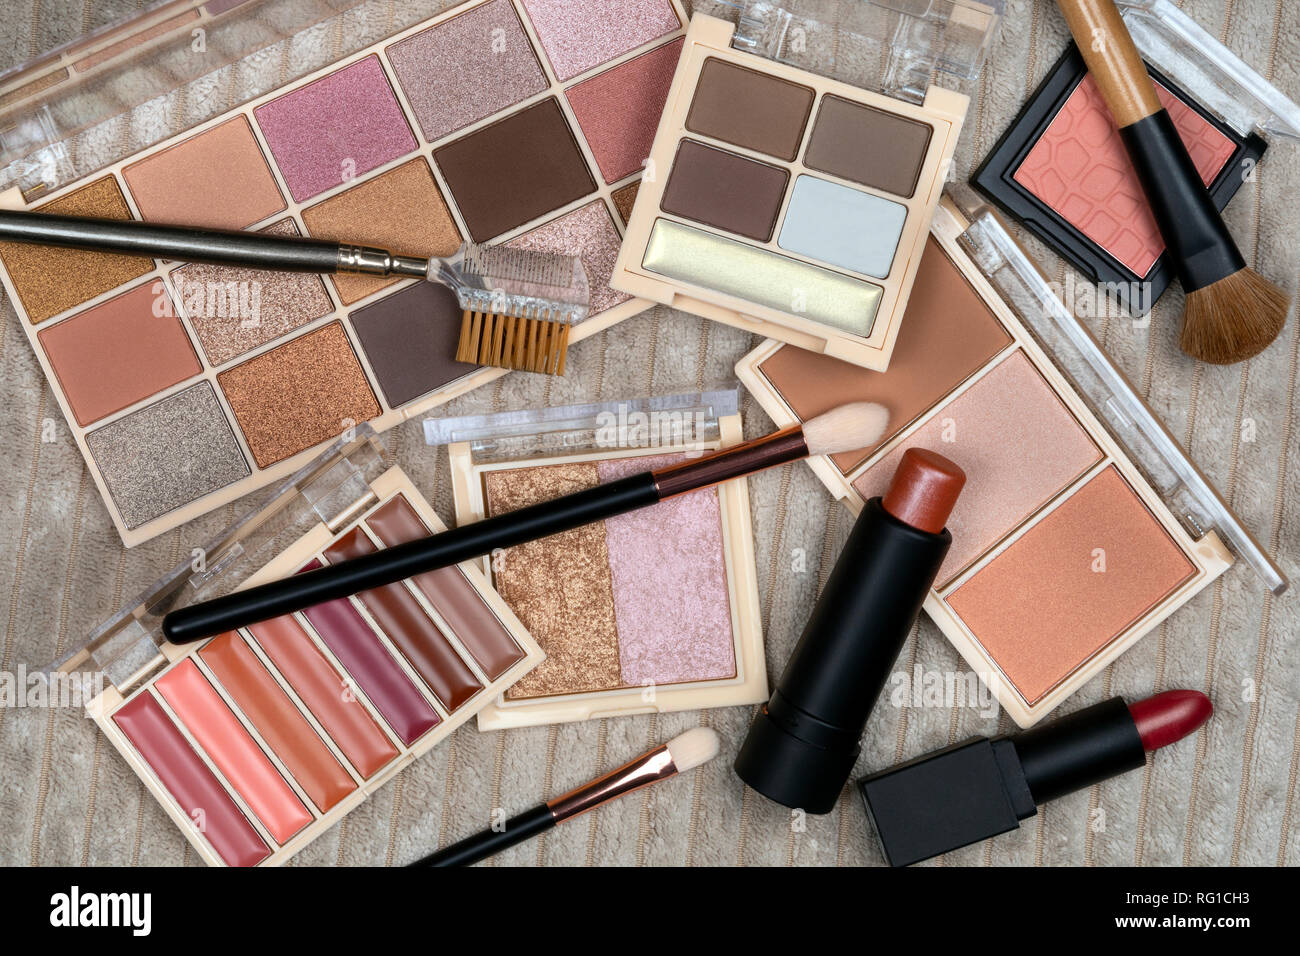 Selection of cosmetics and makeup. Cosmetics are substances or products used to enhance or alter the appearance of the face and body. Stock Photo